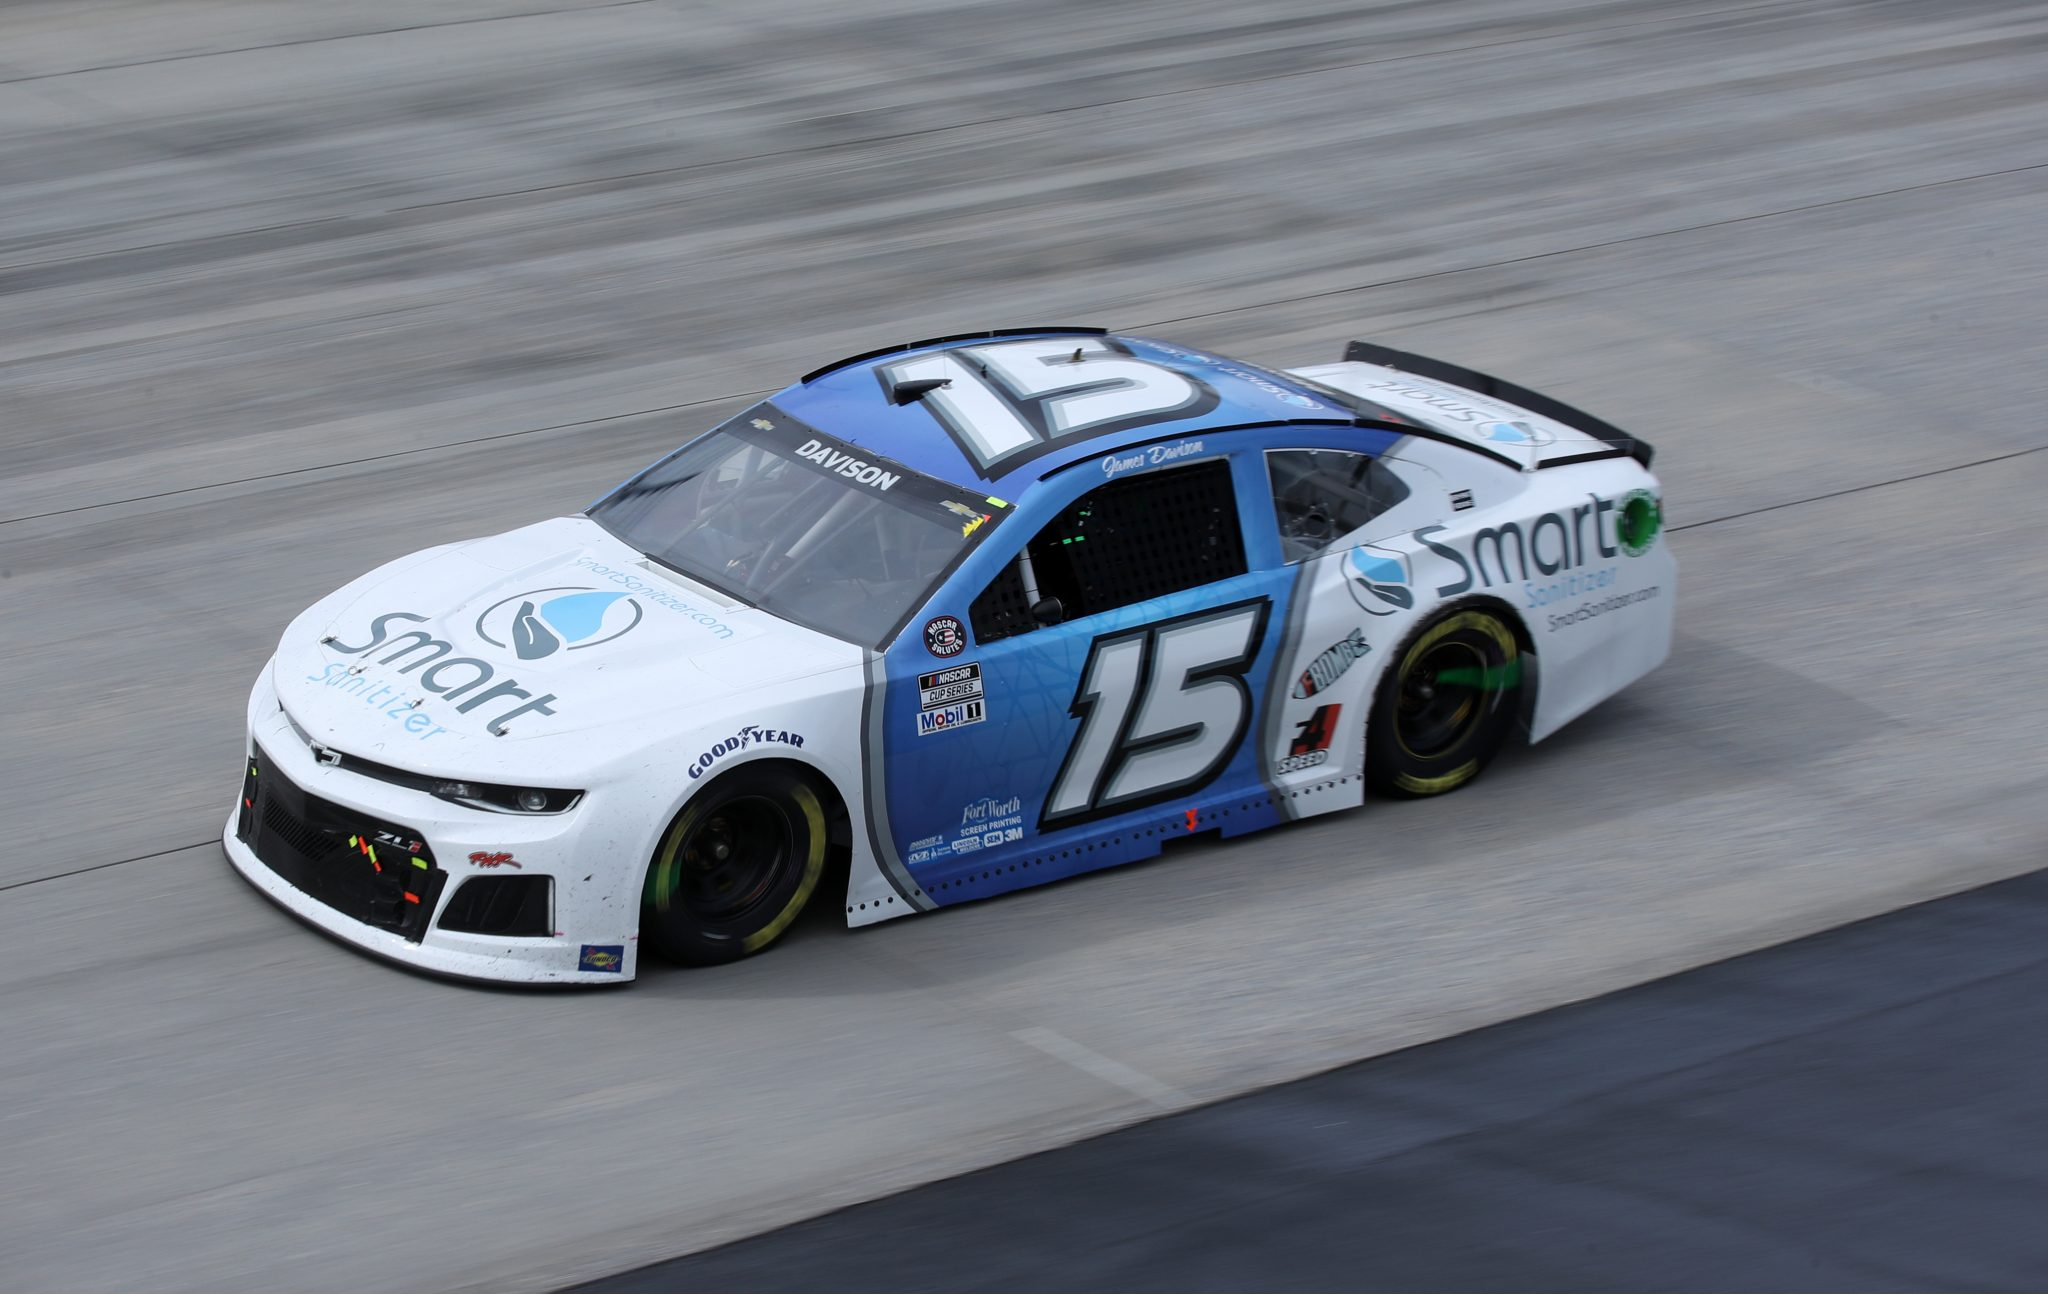 DOVER, DELAWARE - MAY 16: James Davison, driver of the #15 Rick Ware Racing Chevrolet, races during the NASCAR Cup Series Drydene 400 at Dover International Speedway on May 16, 2021 in Dover, Delaware. (Photo by Sean Gardner/Getty Images) | Getty Images